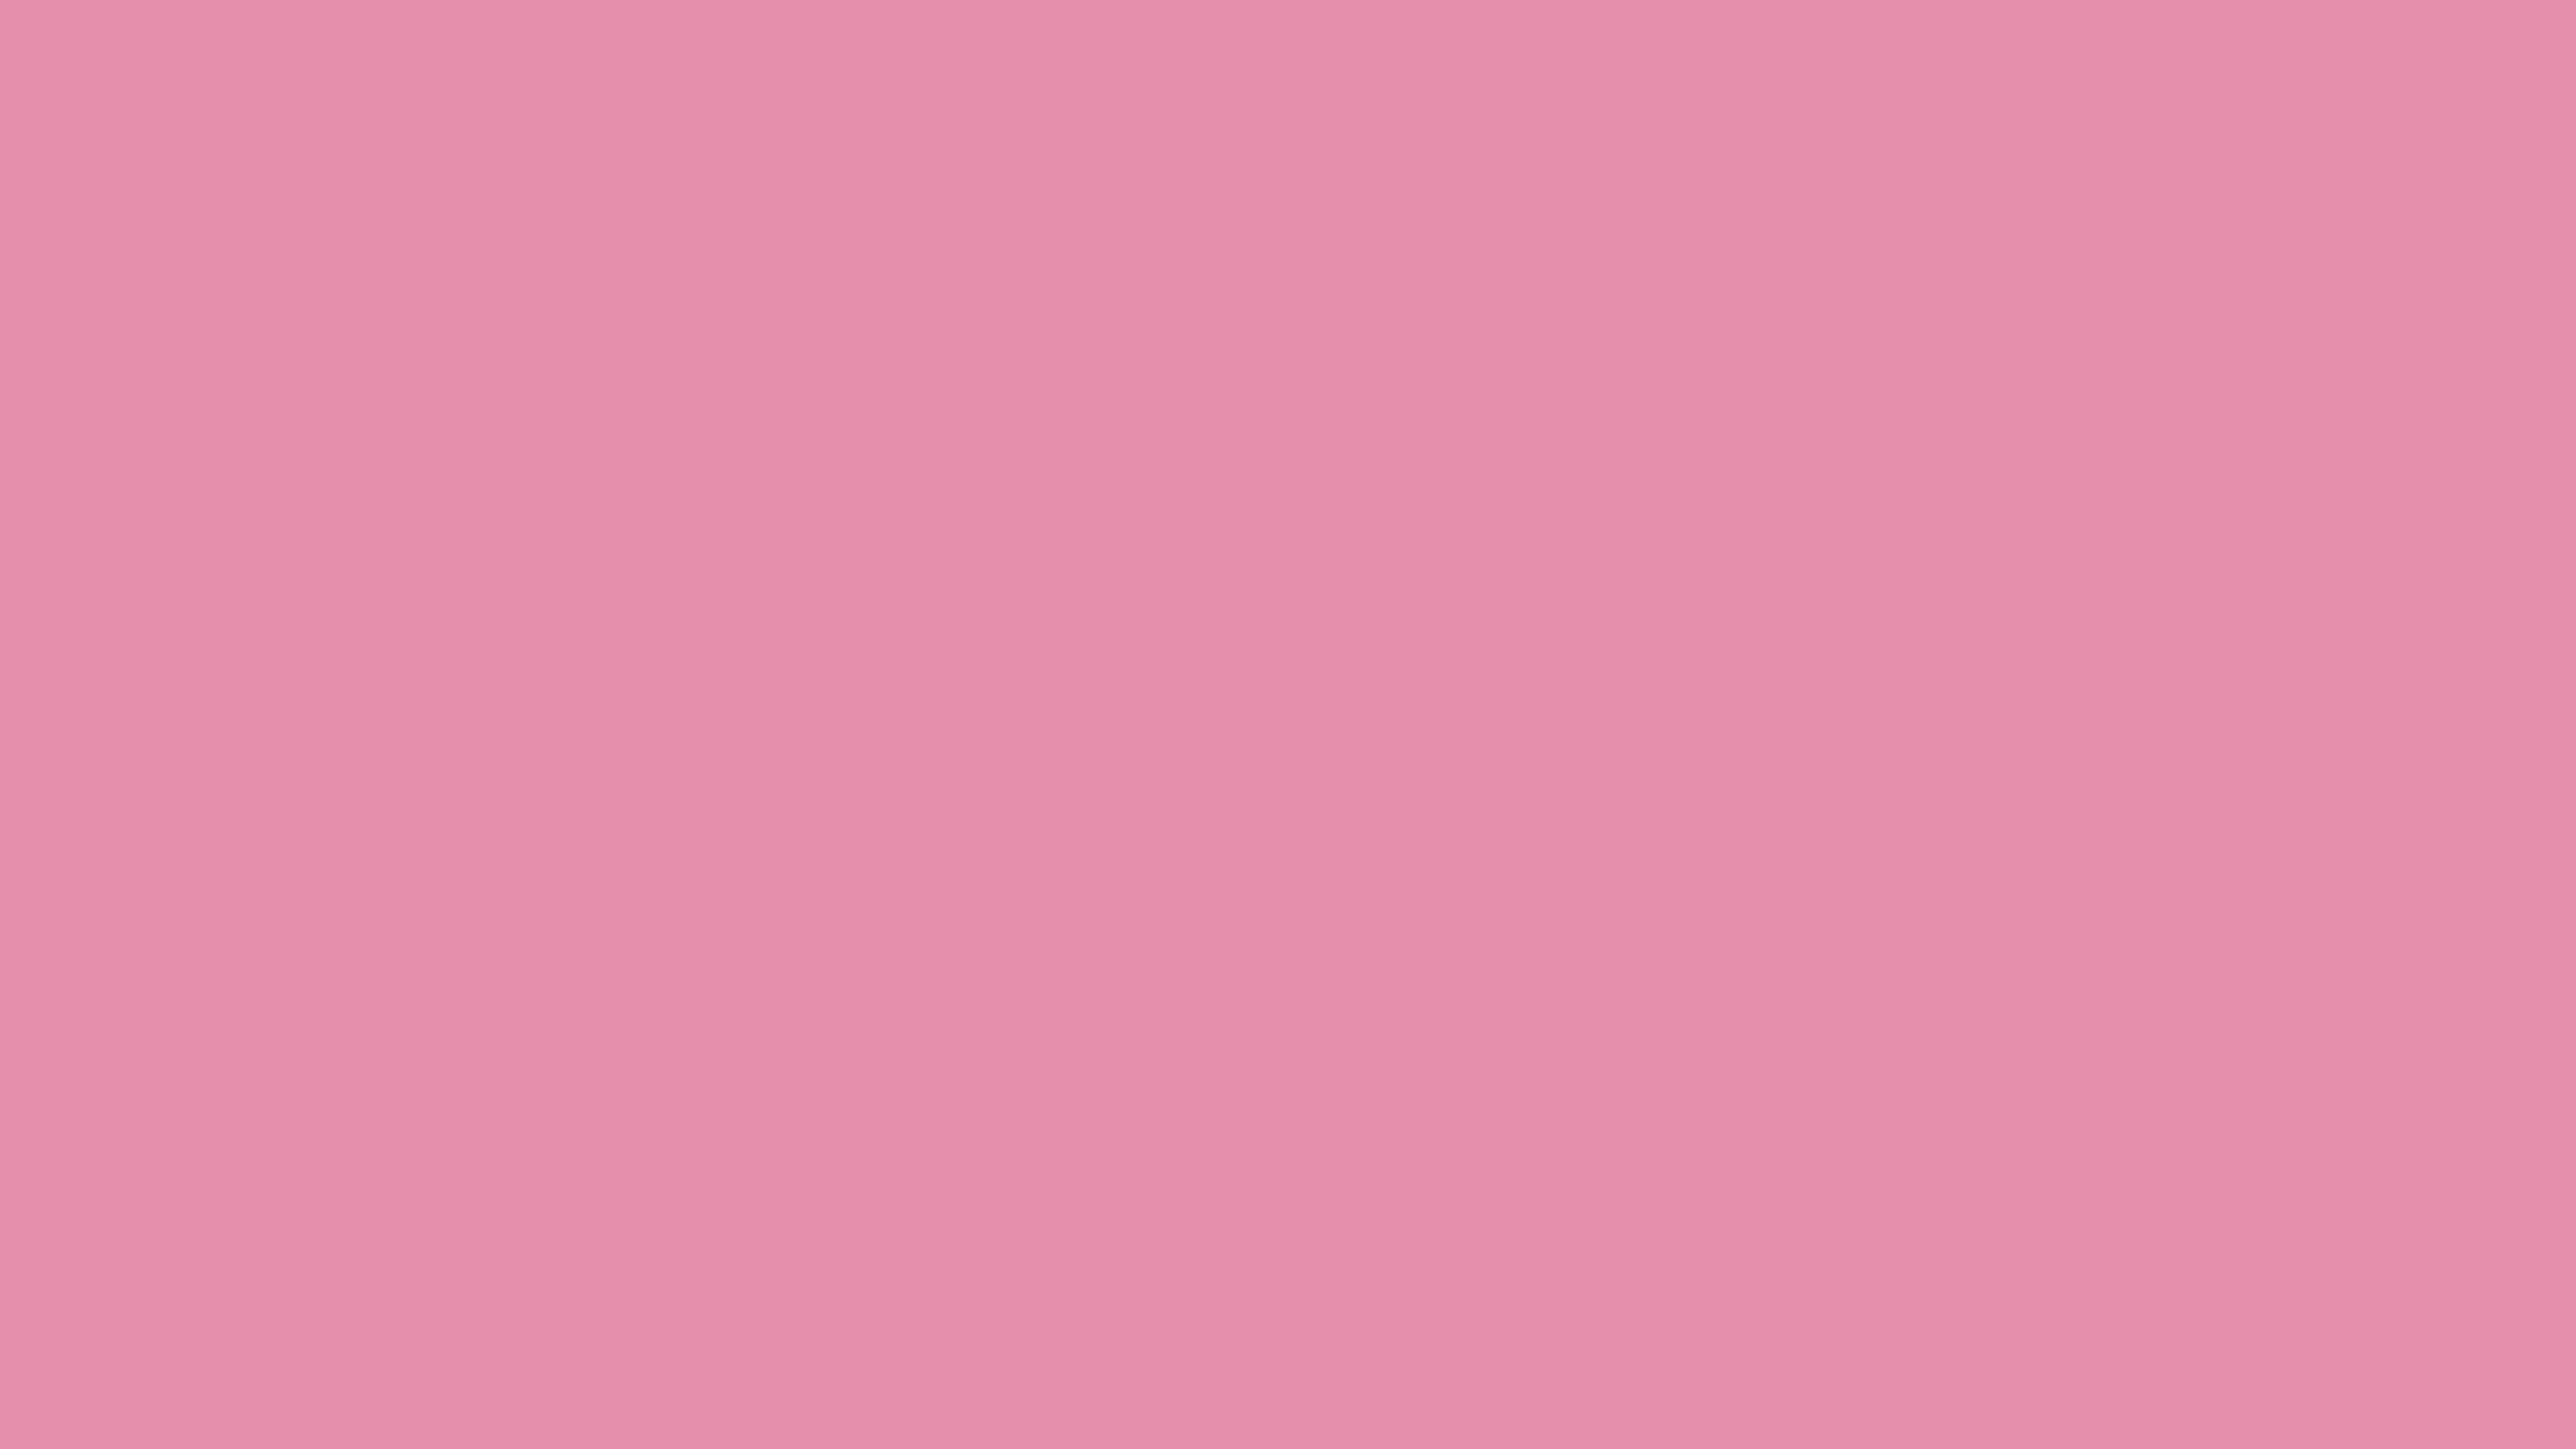 3840x2160 Light Thulian Pink Solid Color Background